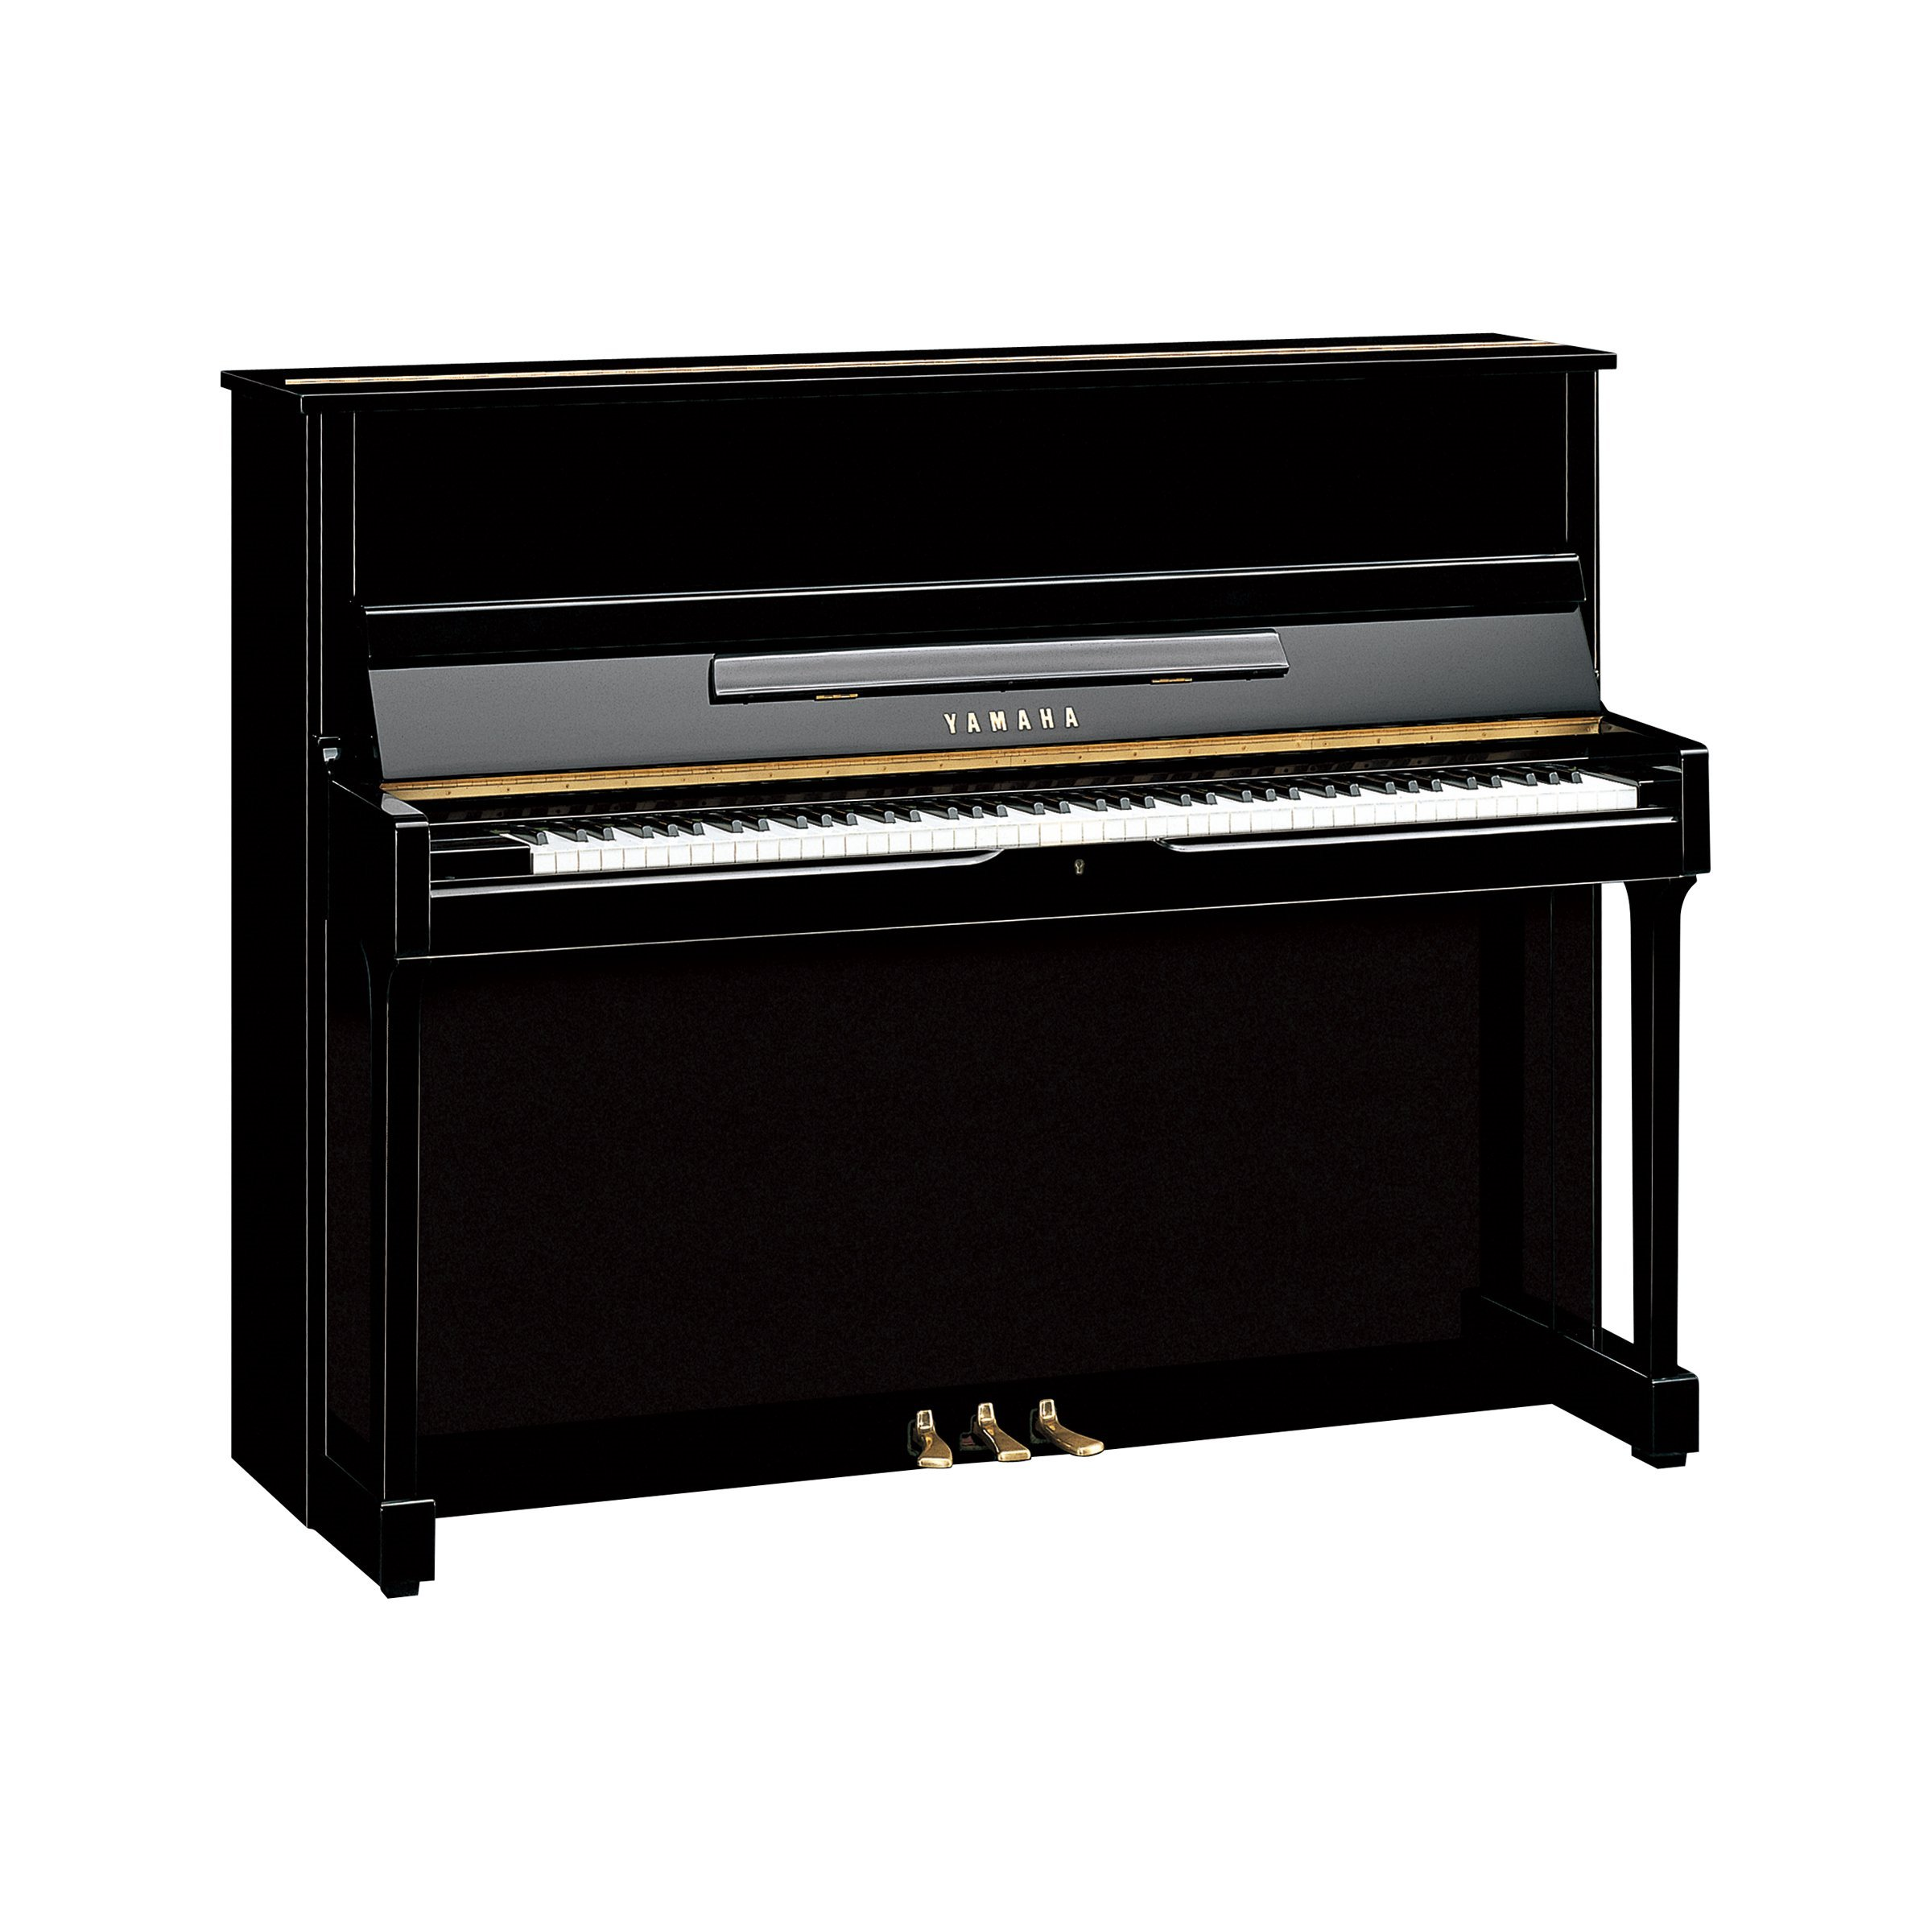 su series overview upright pianos pianos musical. Black Bedroom Furniture Sets. Home Design Ideas